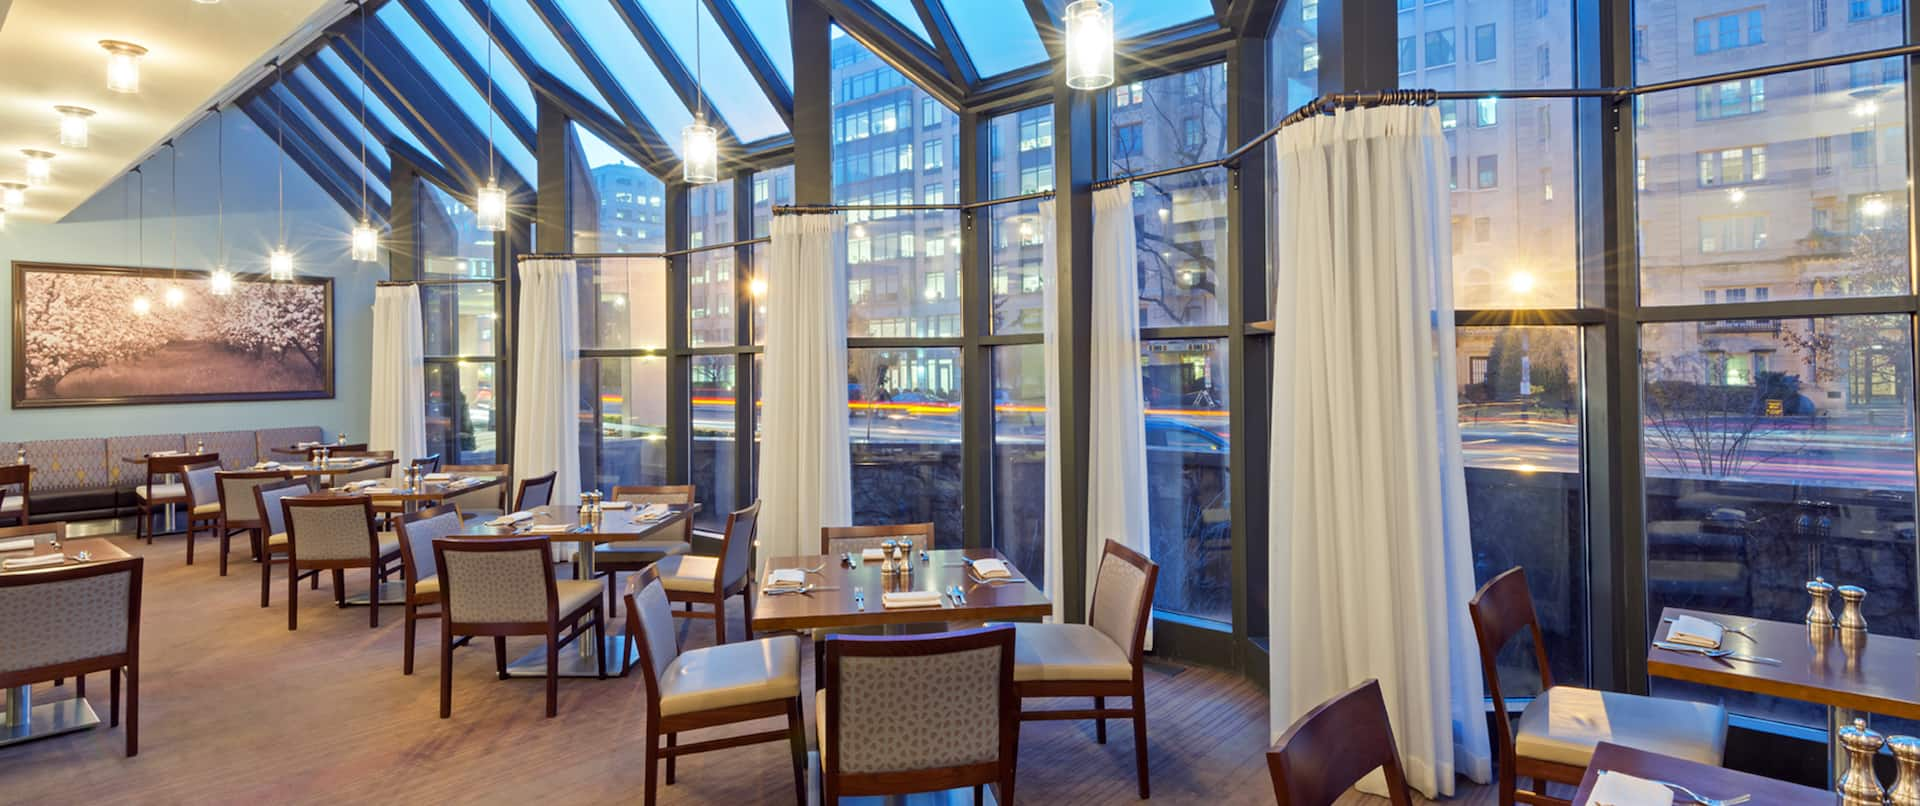 North Gate Grill, Window Tables